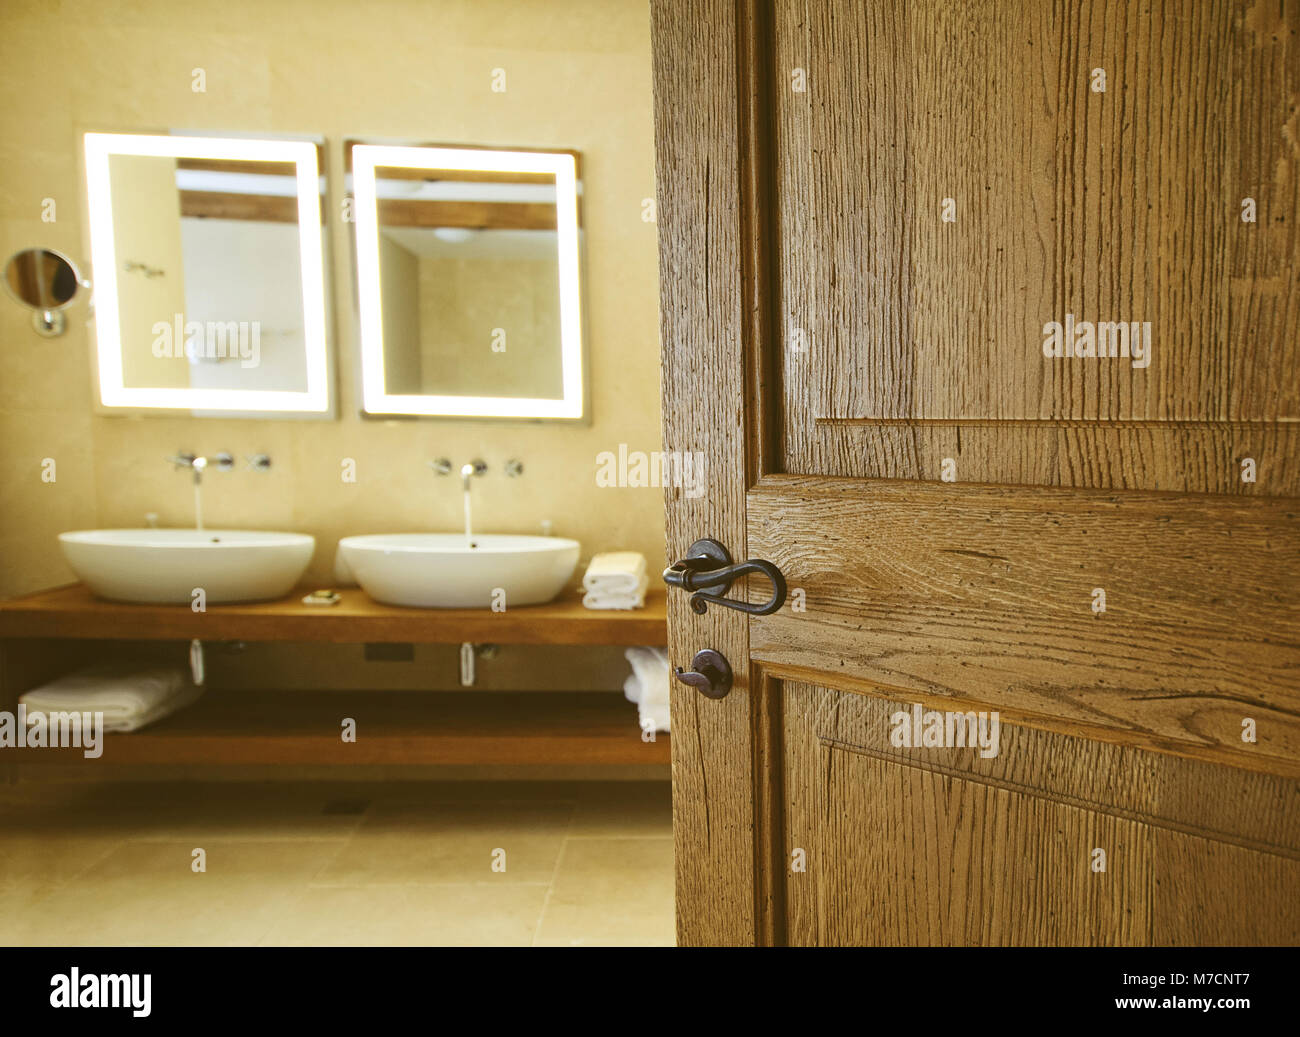 bathroom for an open wooden door. Two sinks for bathrooms and two mirrors. Tap water flowing - Stock Image